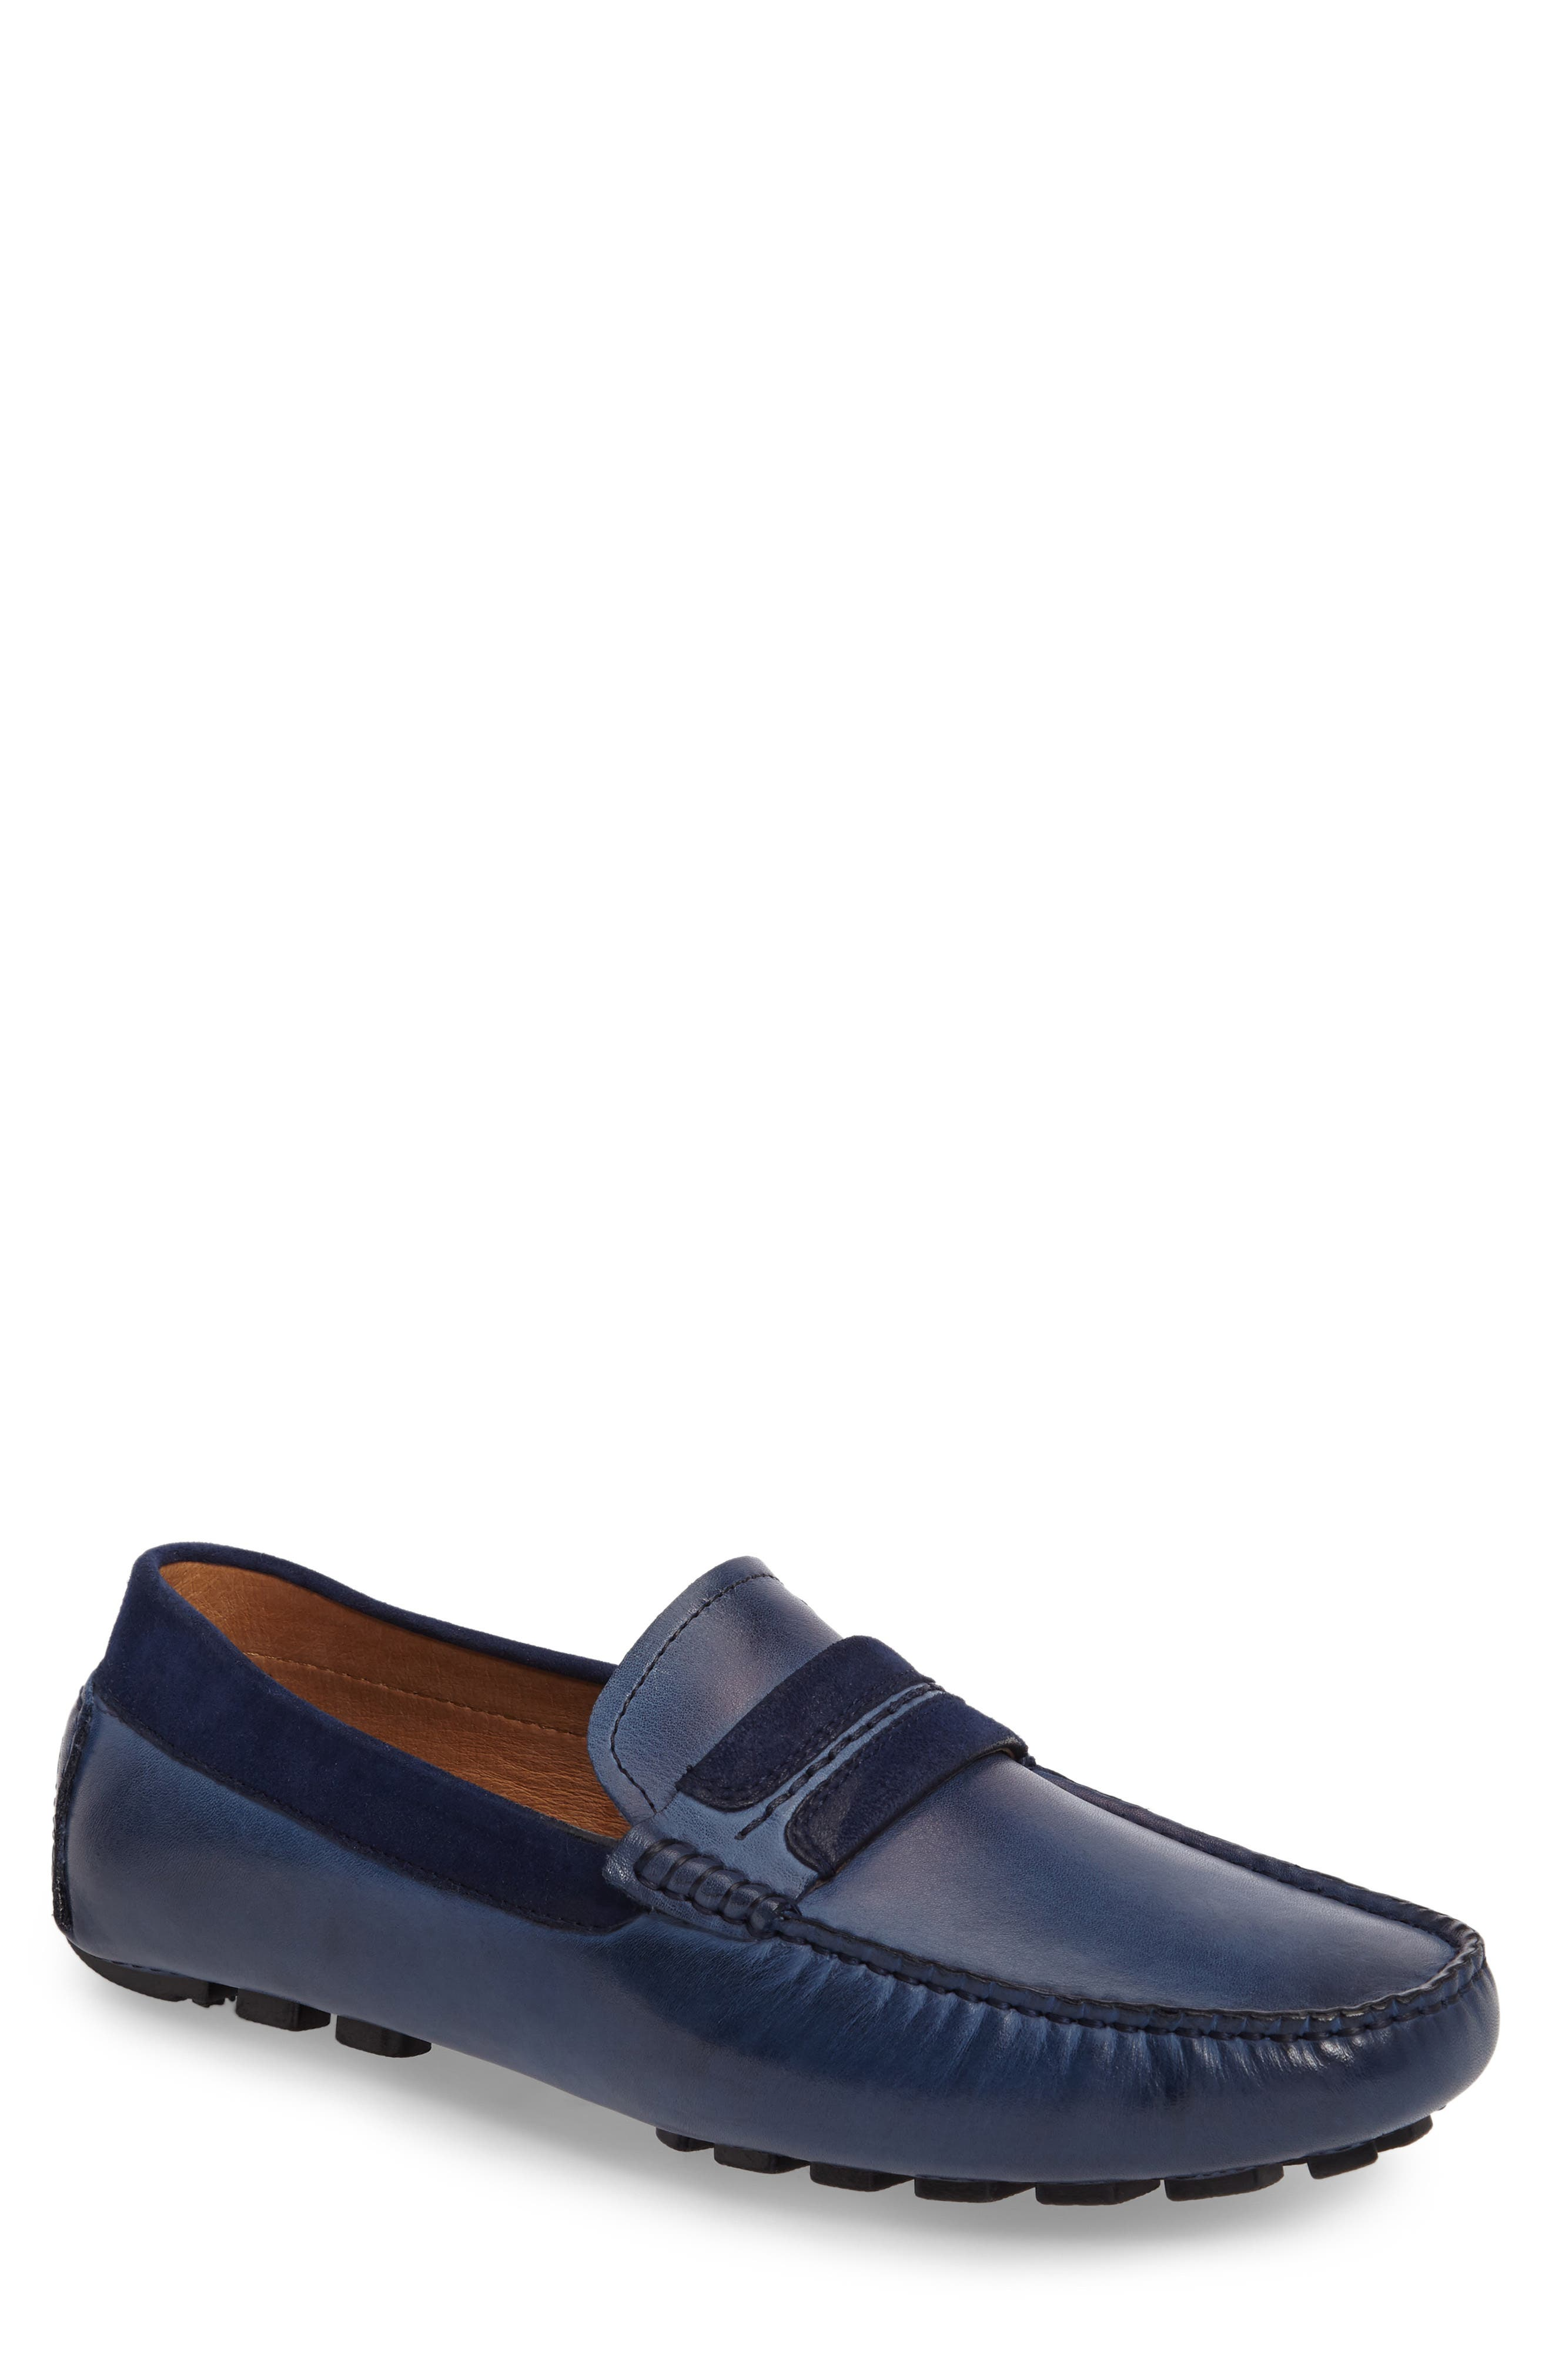 ZANZARA Francesca Driving Shoe, Main, color, BLUE LEATHER